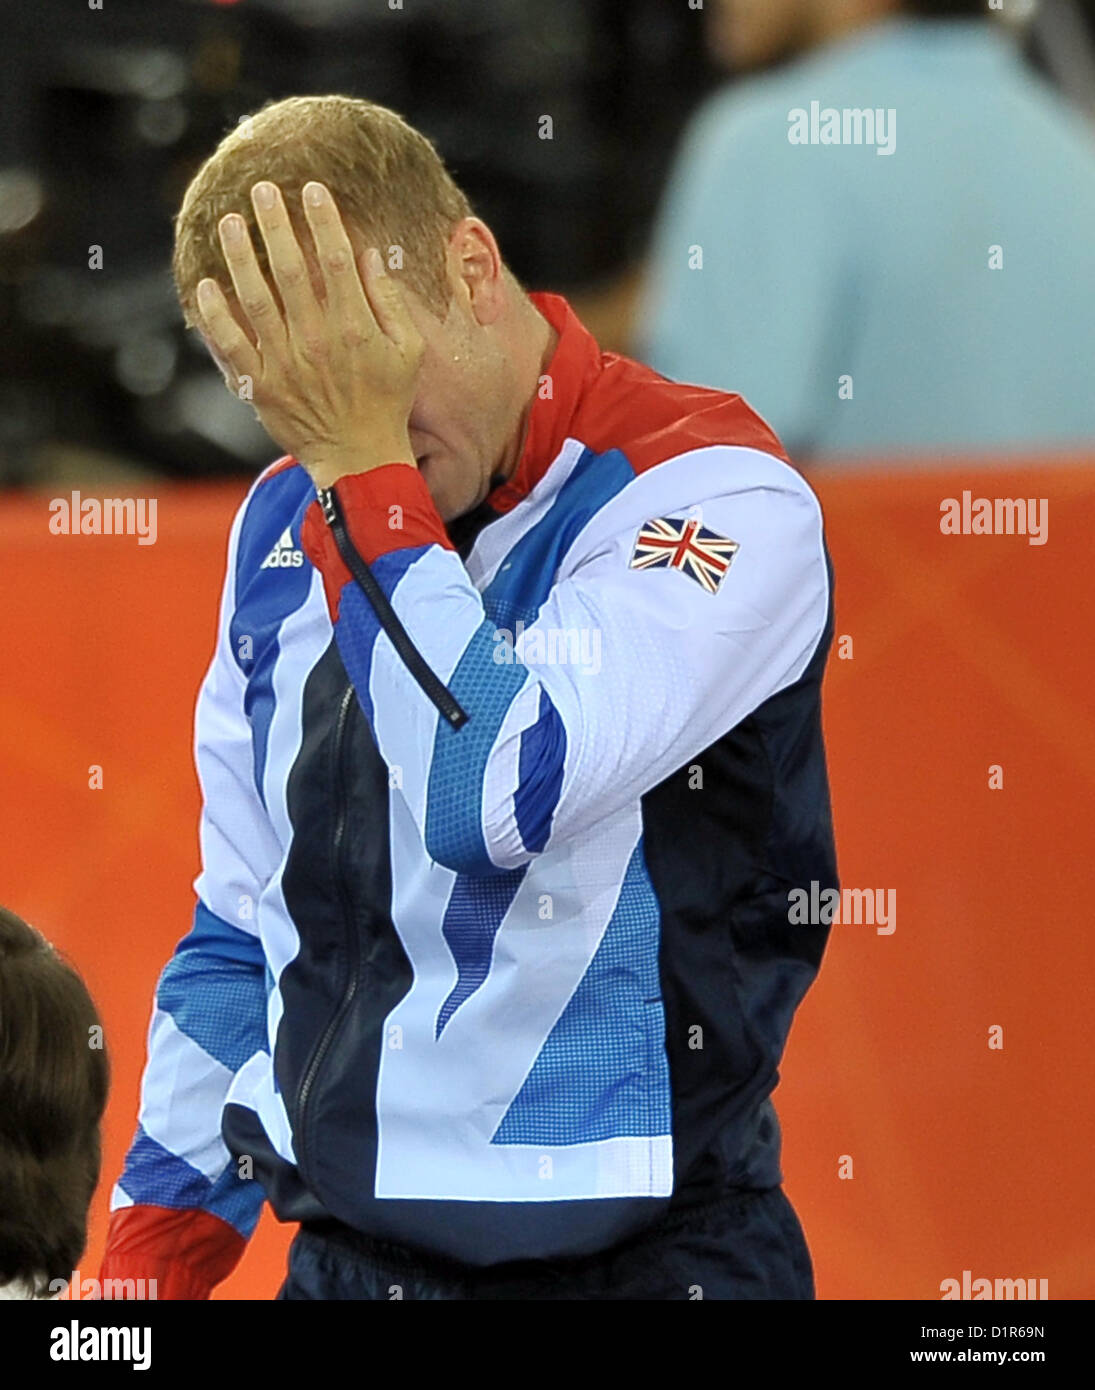 Chris Hoy (GBR, Great Britain) wipes a tear from his eye as he steps onto the podium. Track Cycling - Stock Image